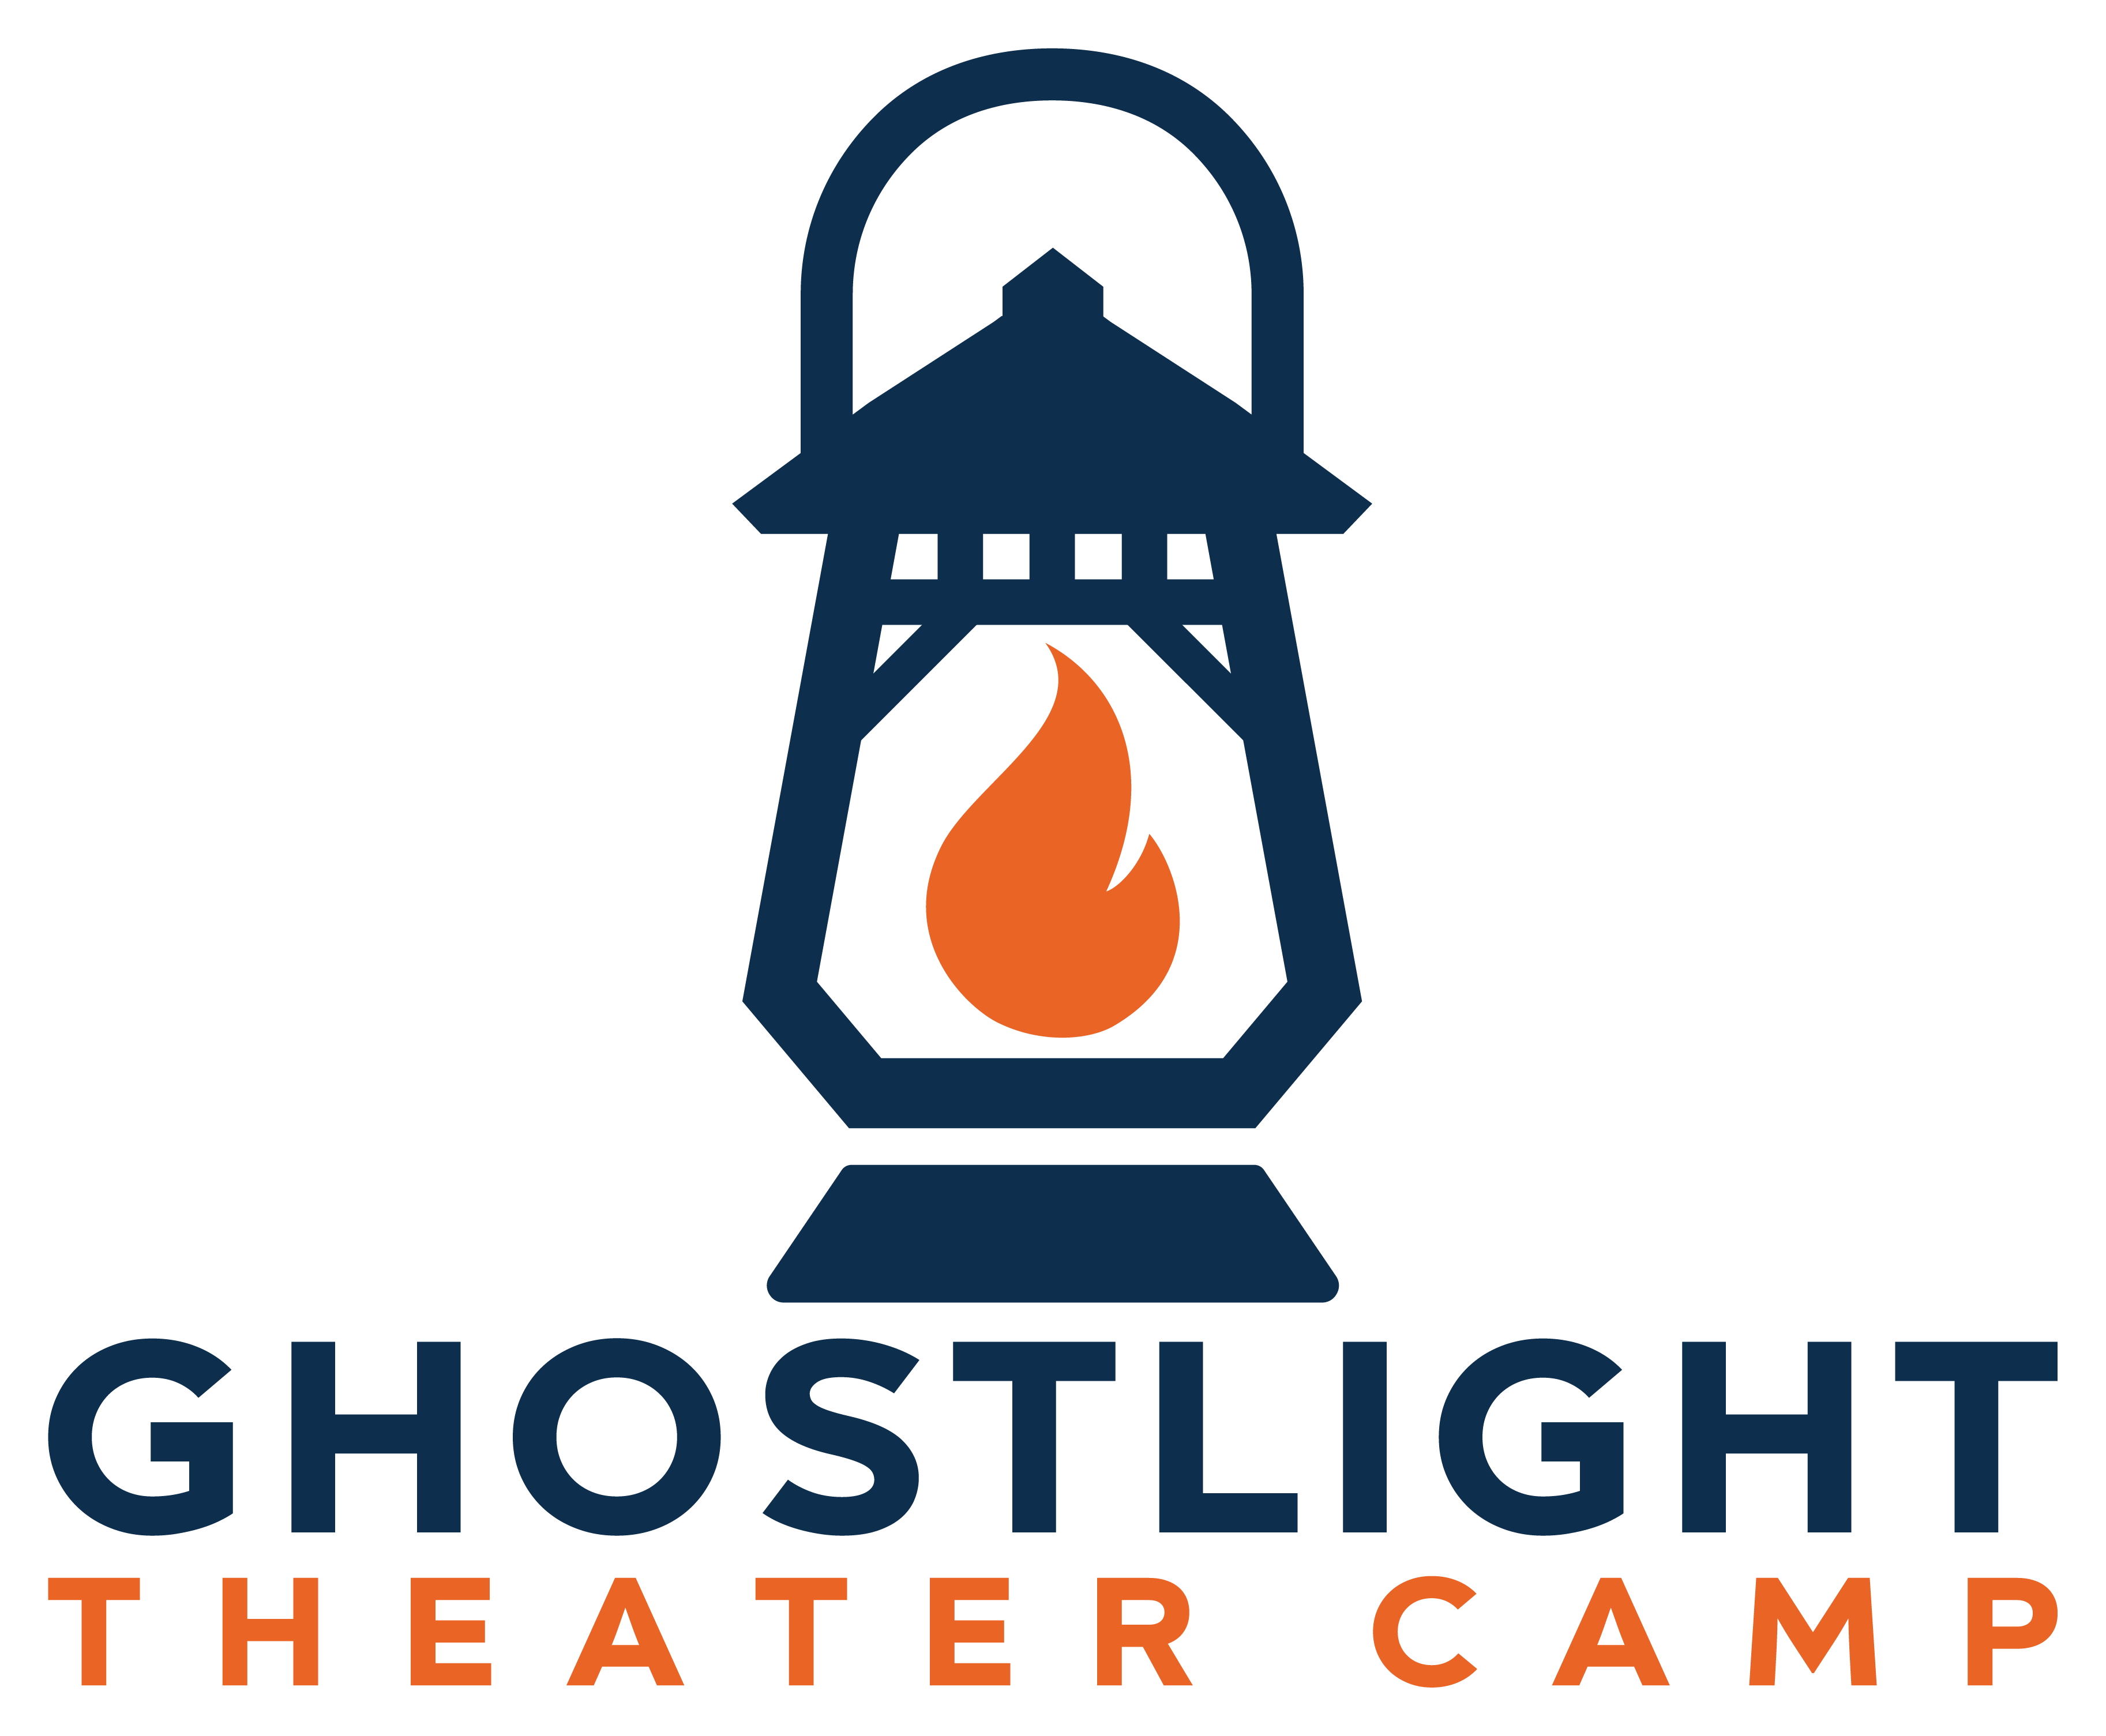 OUTLINED_ghostlight-theater-camp-logo-lantern-flame-full-color-rgb